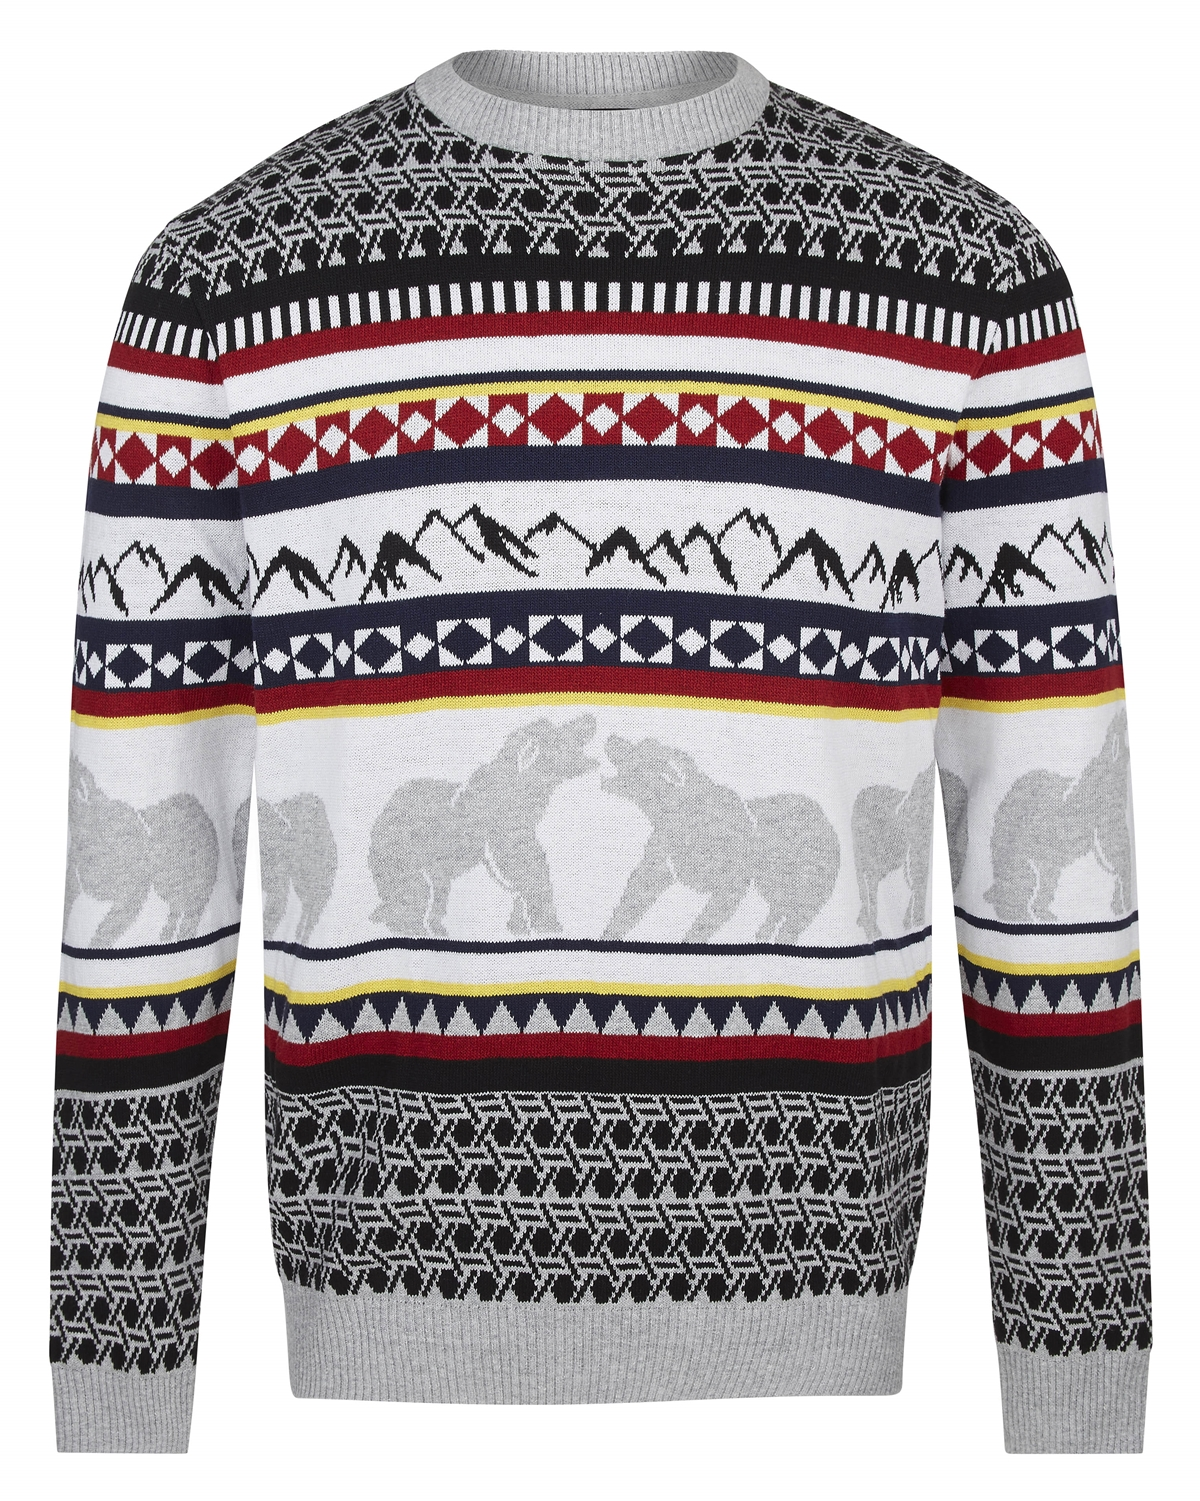 River island patterned knit christmas jumper